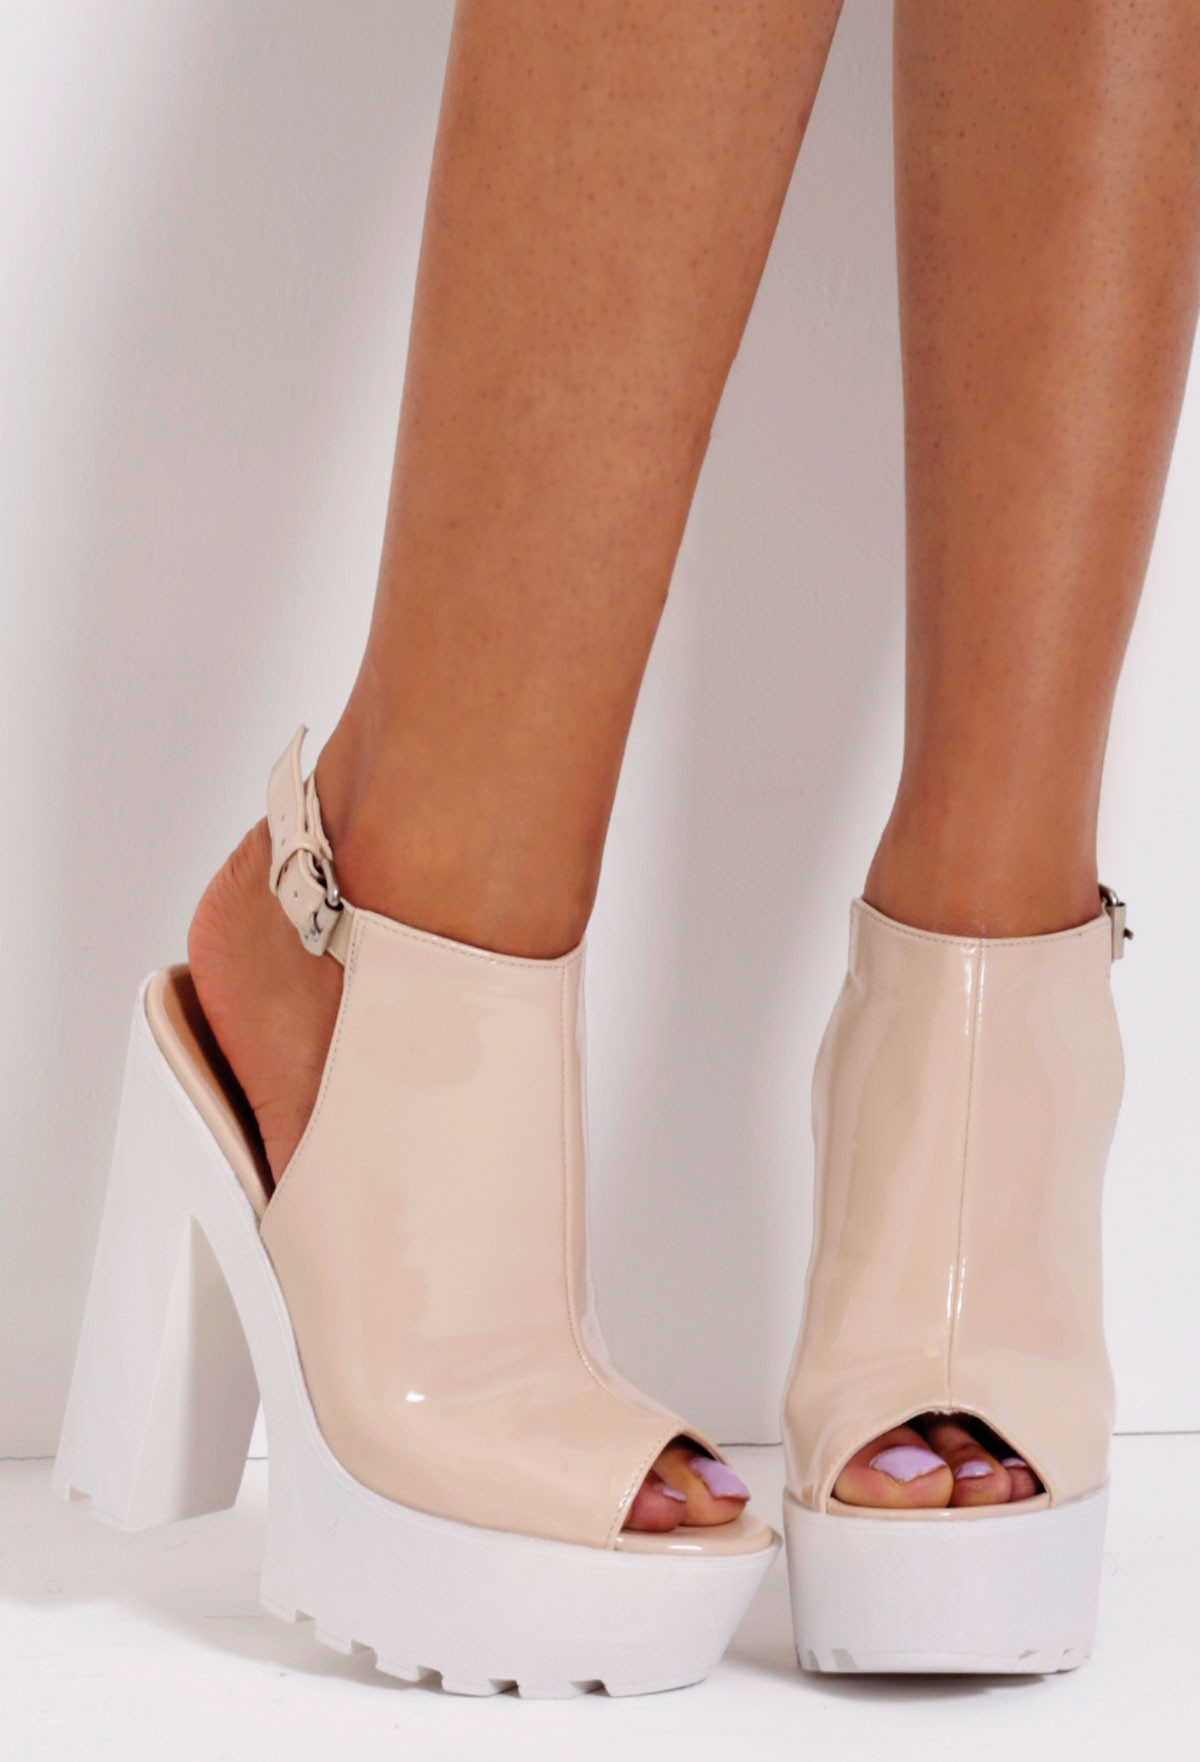 Cappucino Nude Patent Slingback Tractor Sole Platform Shoes | Pink Boutique